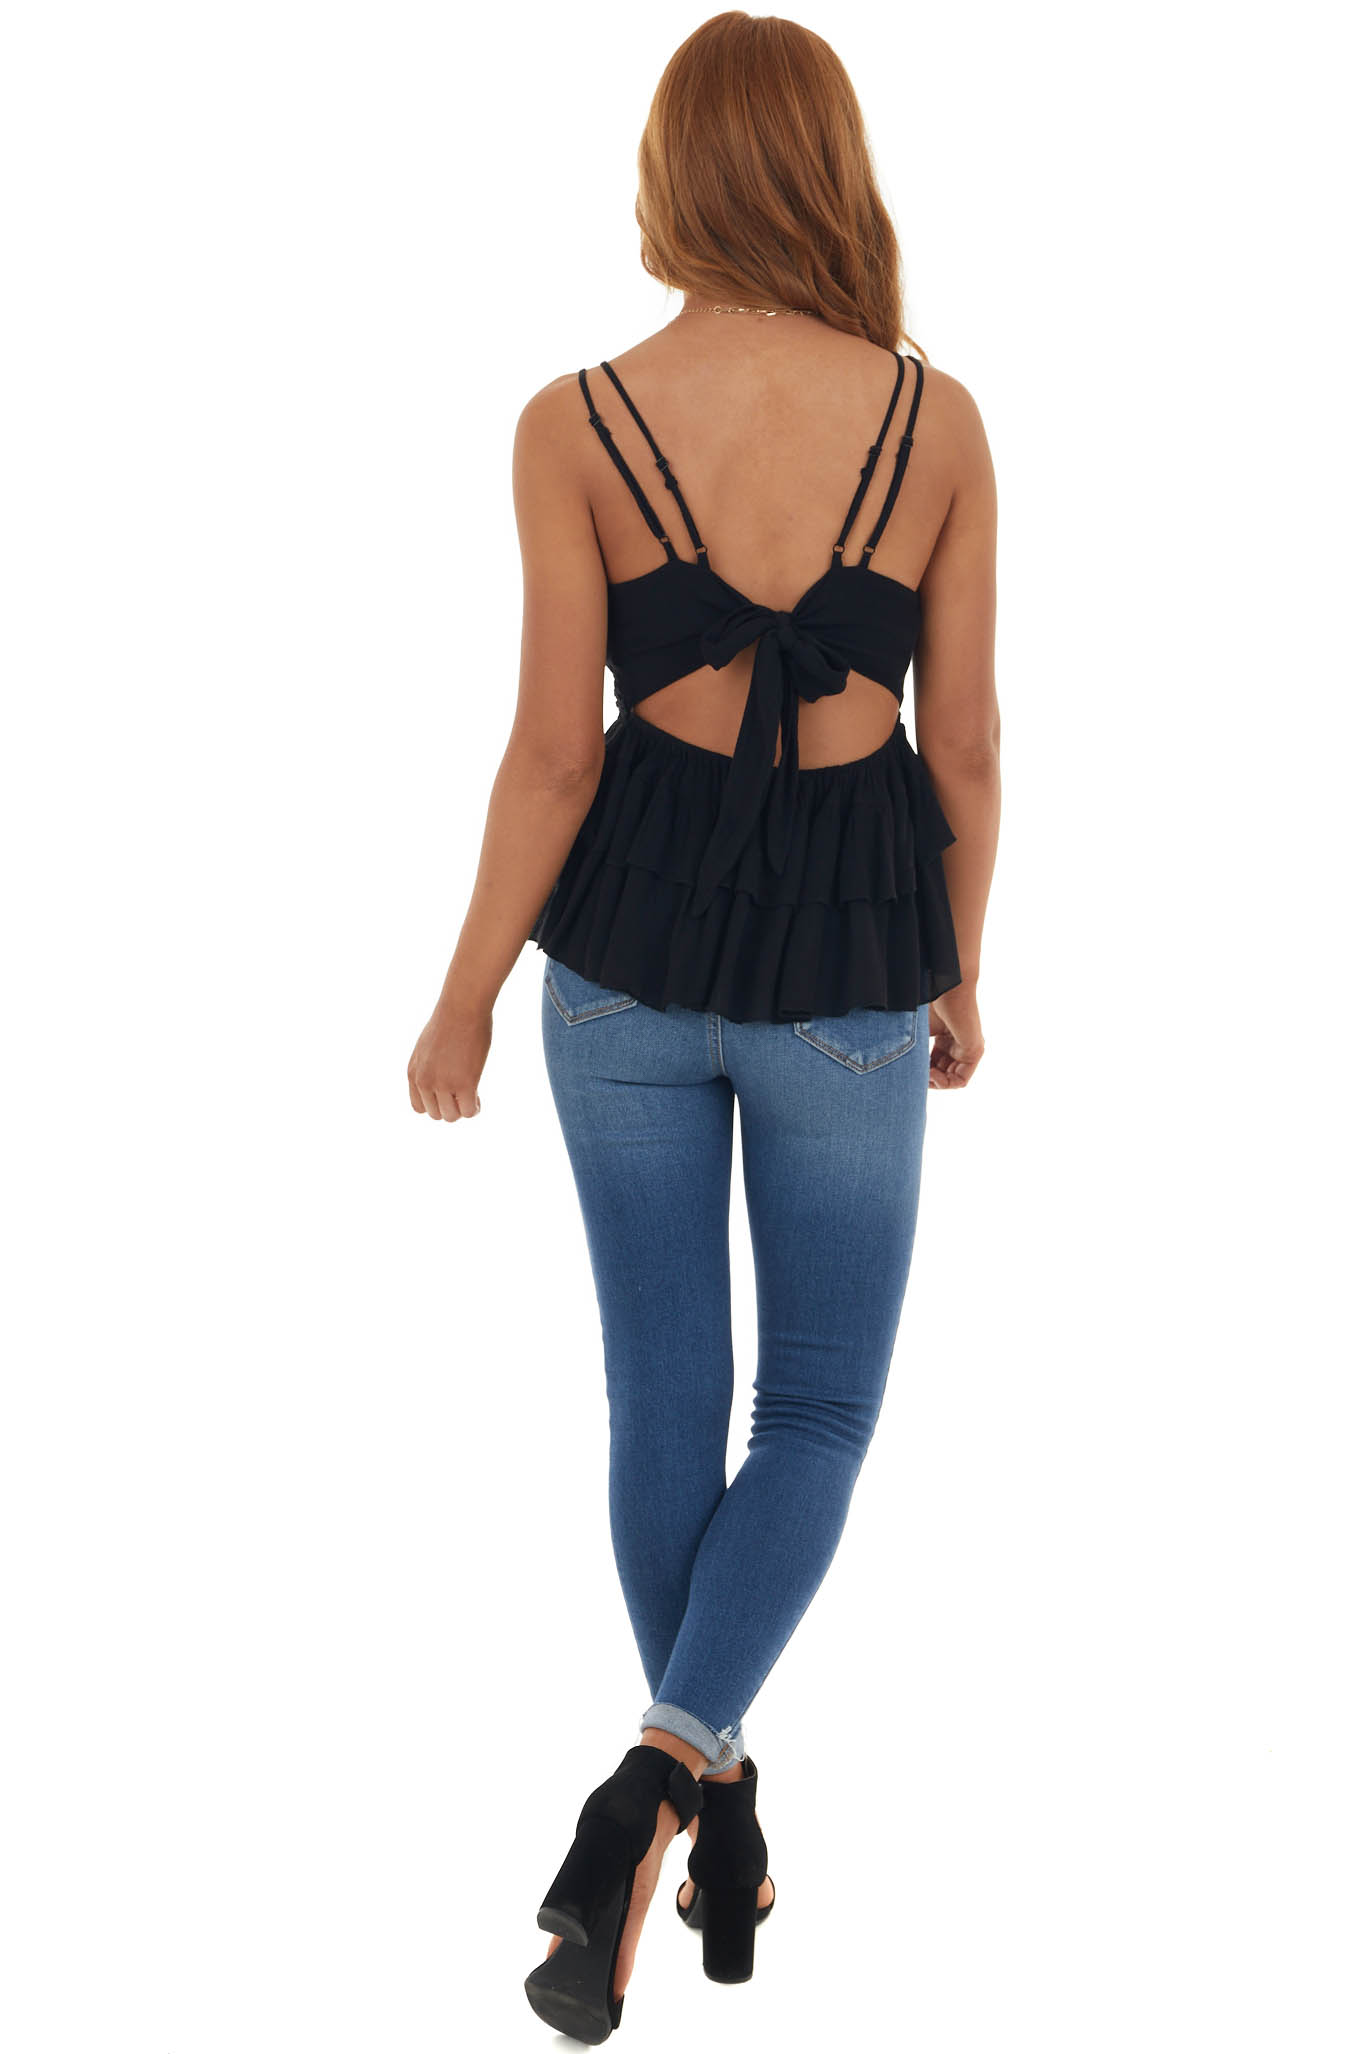 Black Crochet Lace Top with Bow Tie Back